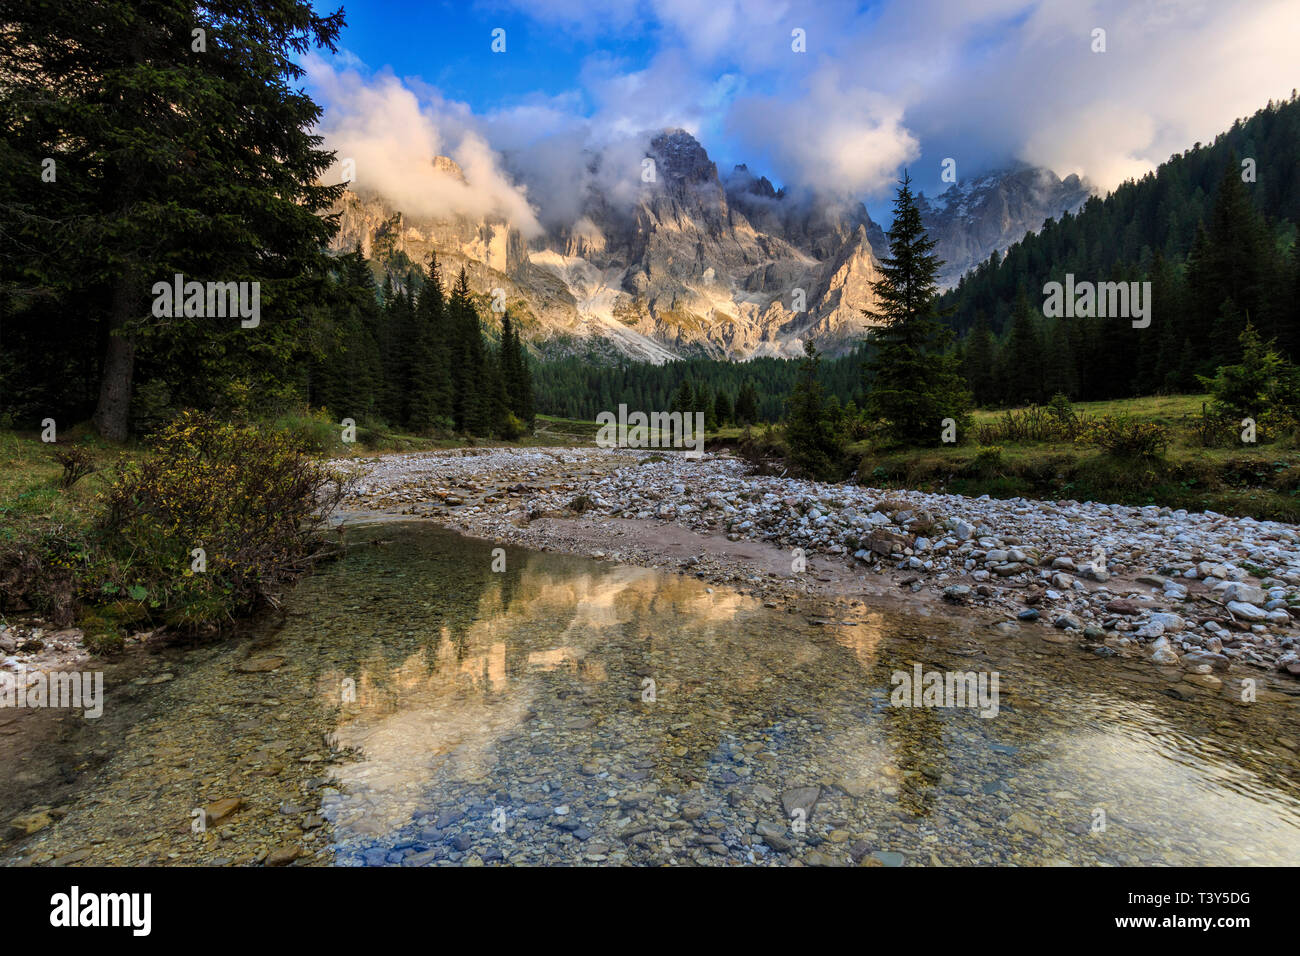 Val Vinegia, a small valley just below the high altitude pass of Passo Rolle in the Pale di San Martino group, Dolomites, Italy. The amazing peaks of  - Stock Image